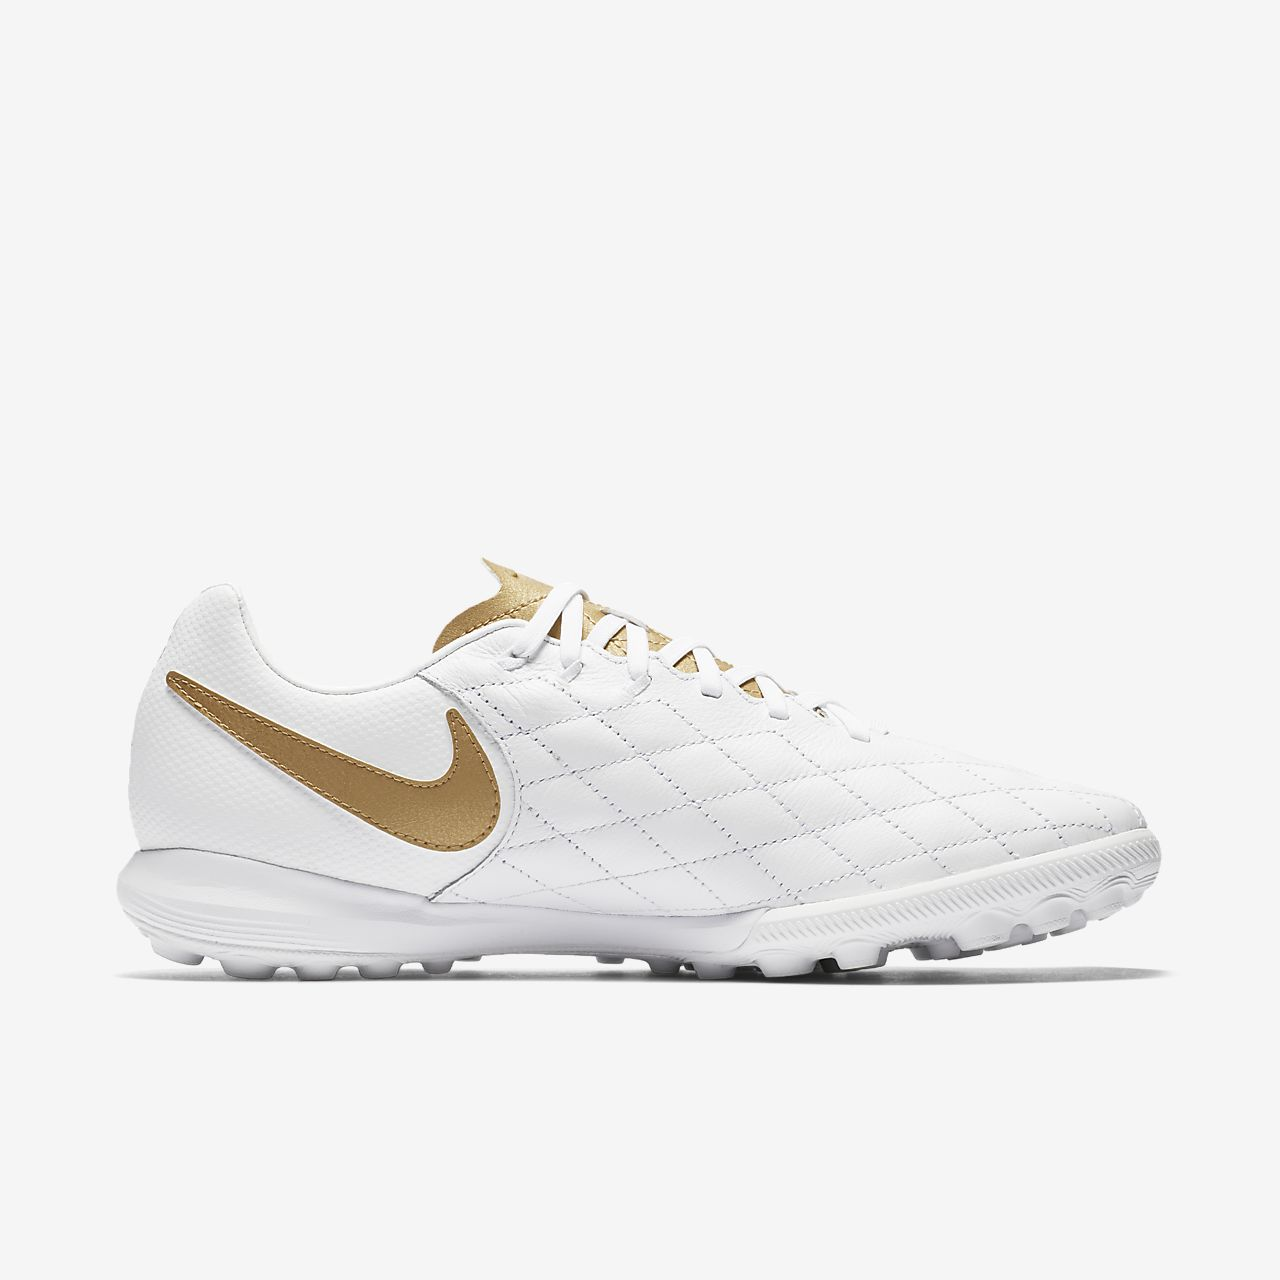 ... Nike TiempoX Lunar Legend VII Pro 10R Artificial-Turf Football Shoe